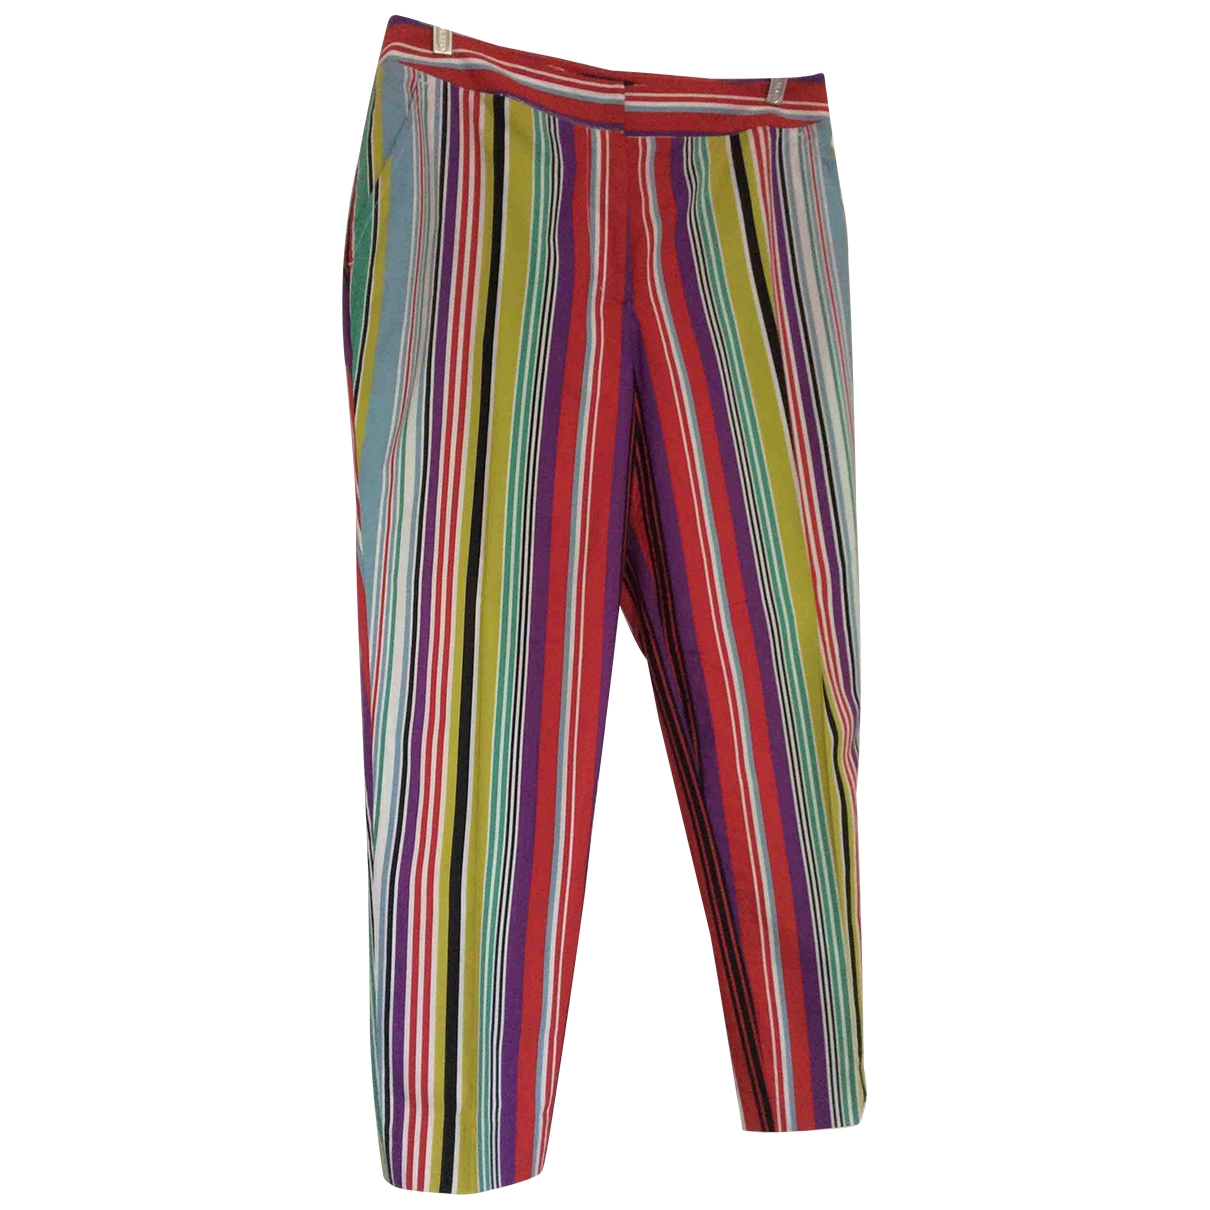 Etro \N Multicolour Cotton Trousers for Women 44 IT